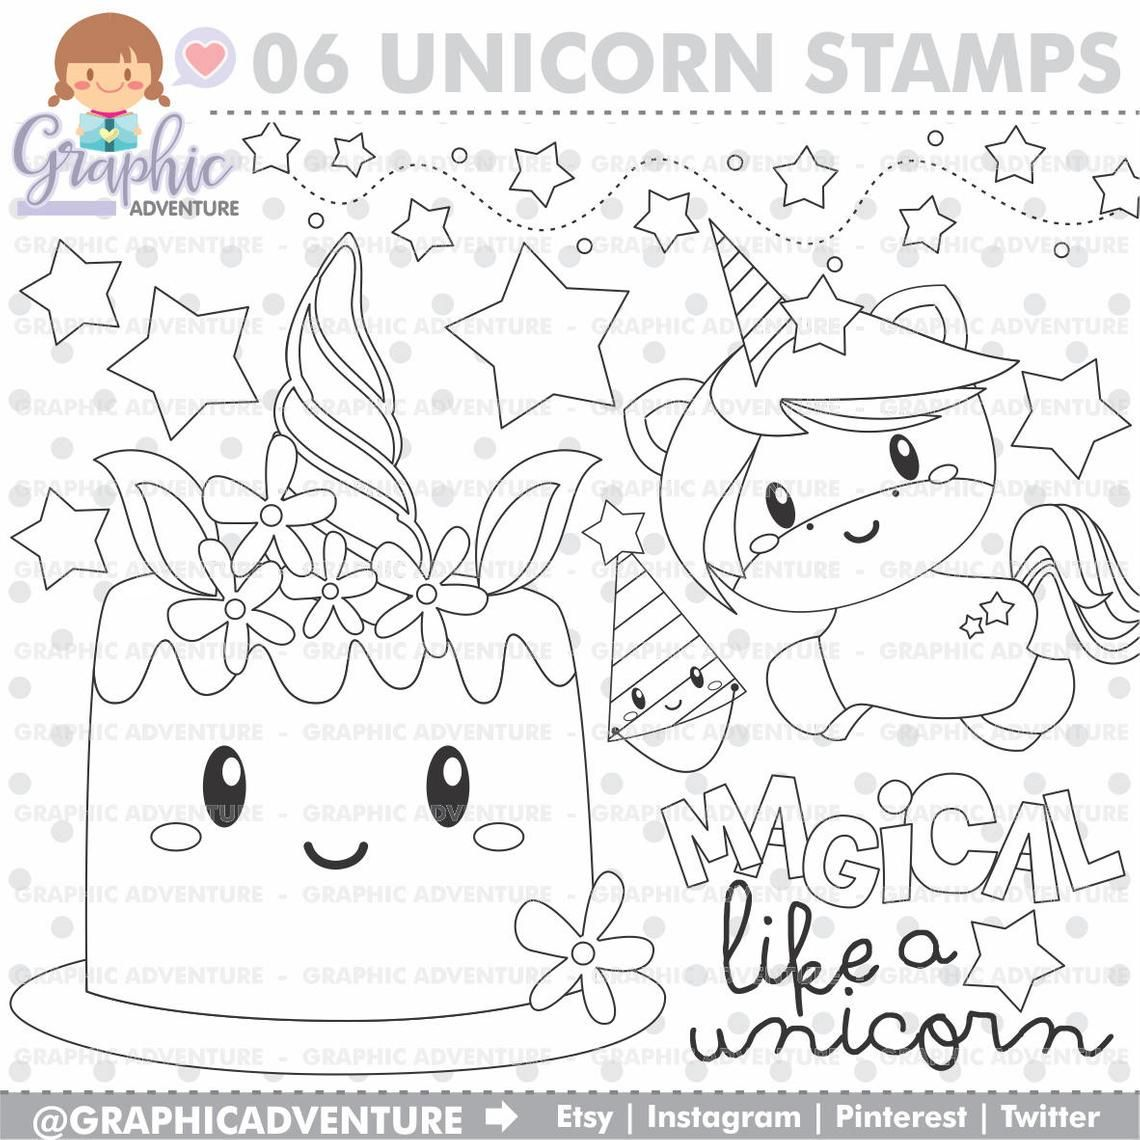 Unicorn Stamp Birthday Stamp Commercial Use Digi Stamp Etsy In 2021 Unicorn Coloring Pages Digital Stamps Coloring Pages